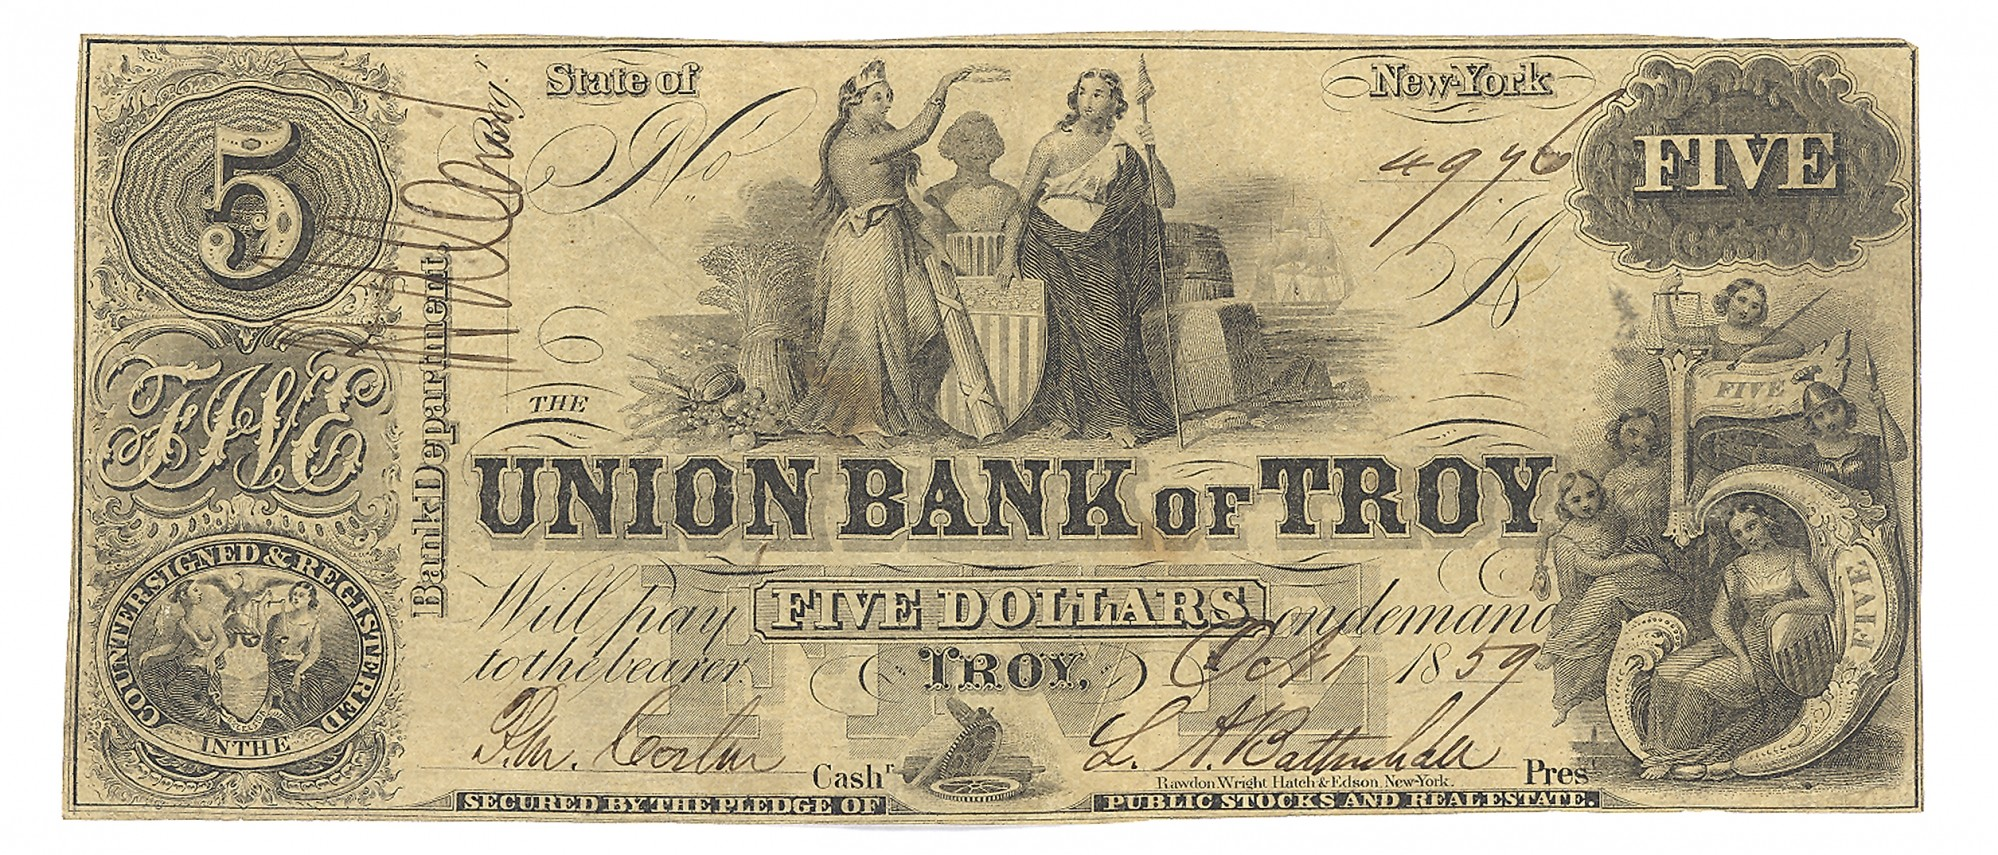 THE UNION BANK OF TROY, TROY, NEW YORK $5 NOTE